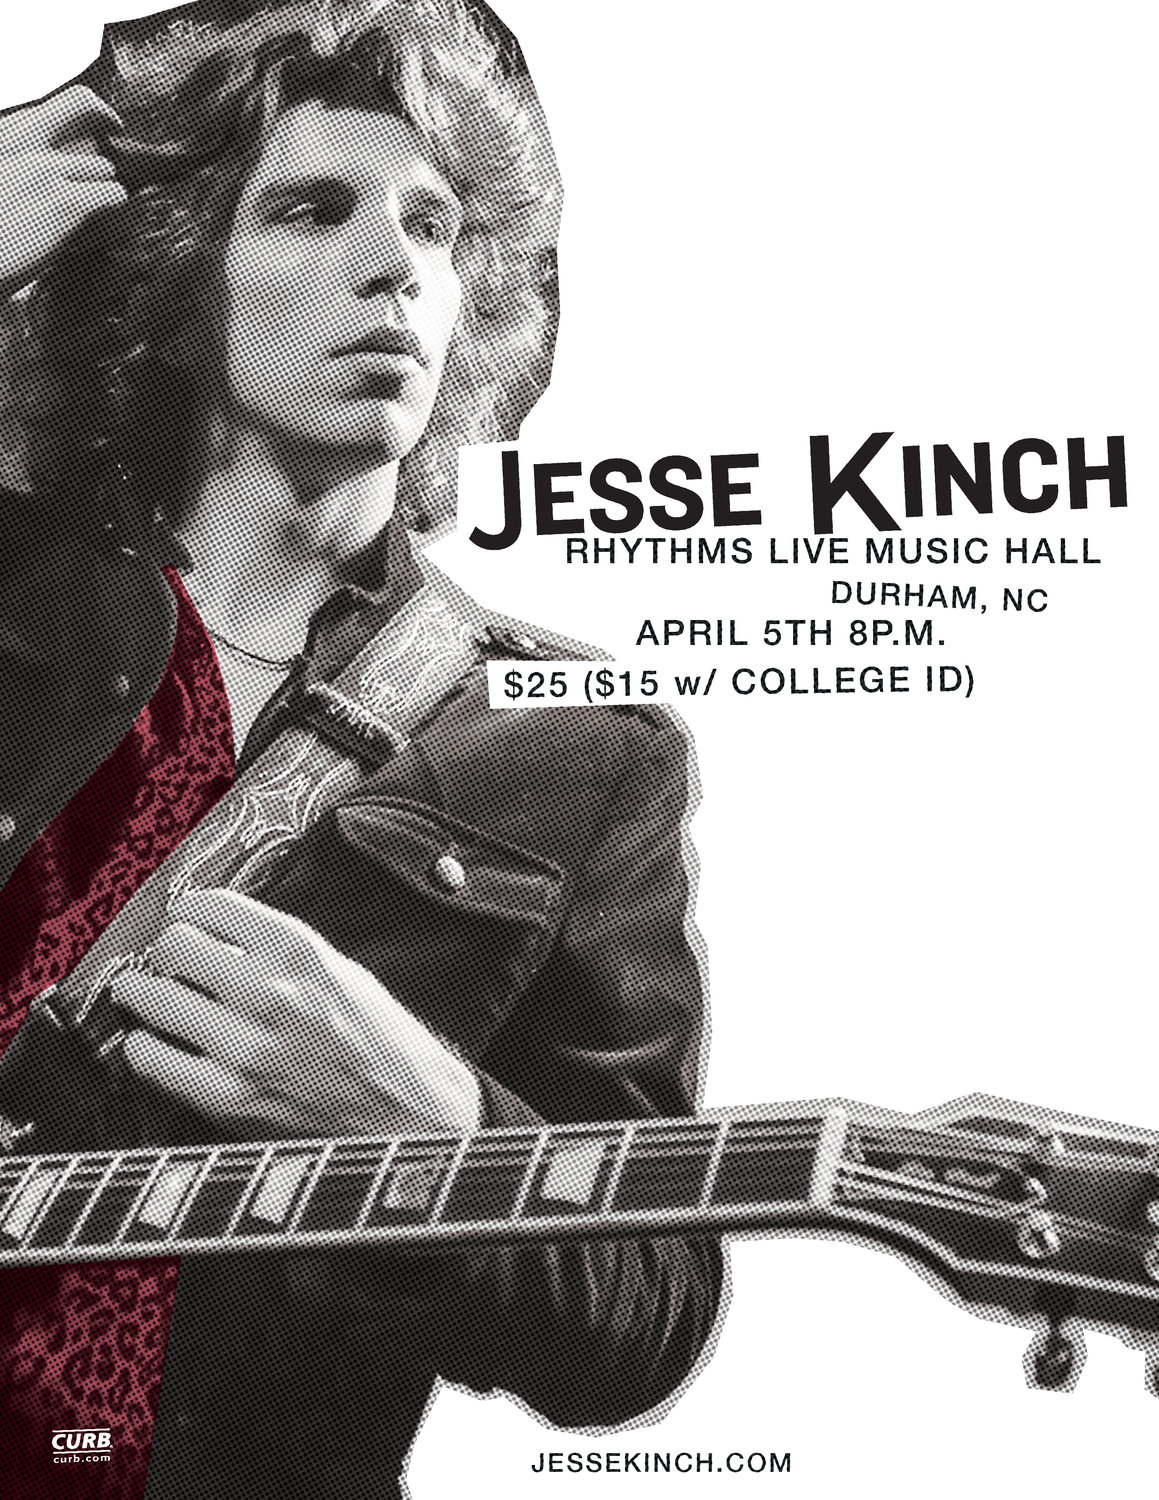 Twenty-four-year-old Jesse Kinch performed in Durham, N.C., on April 5.